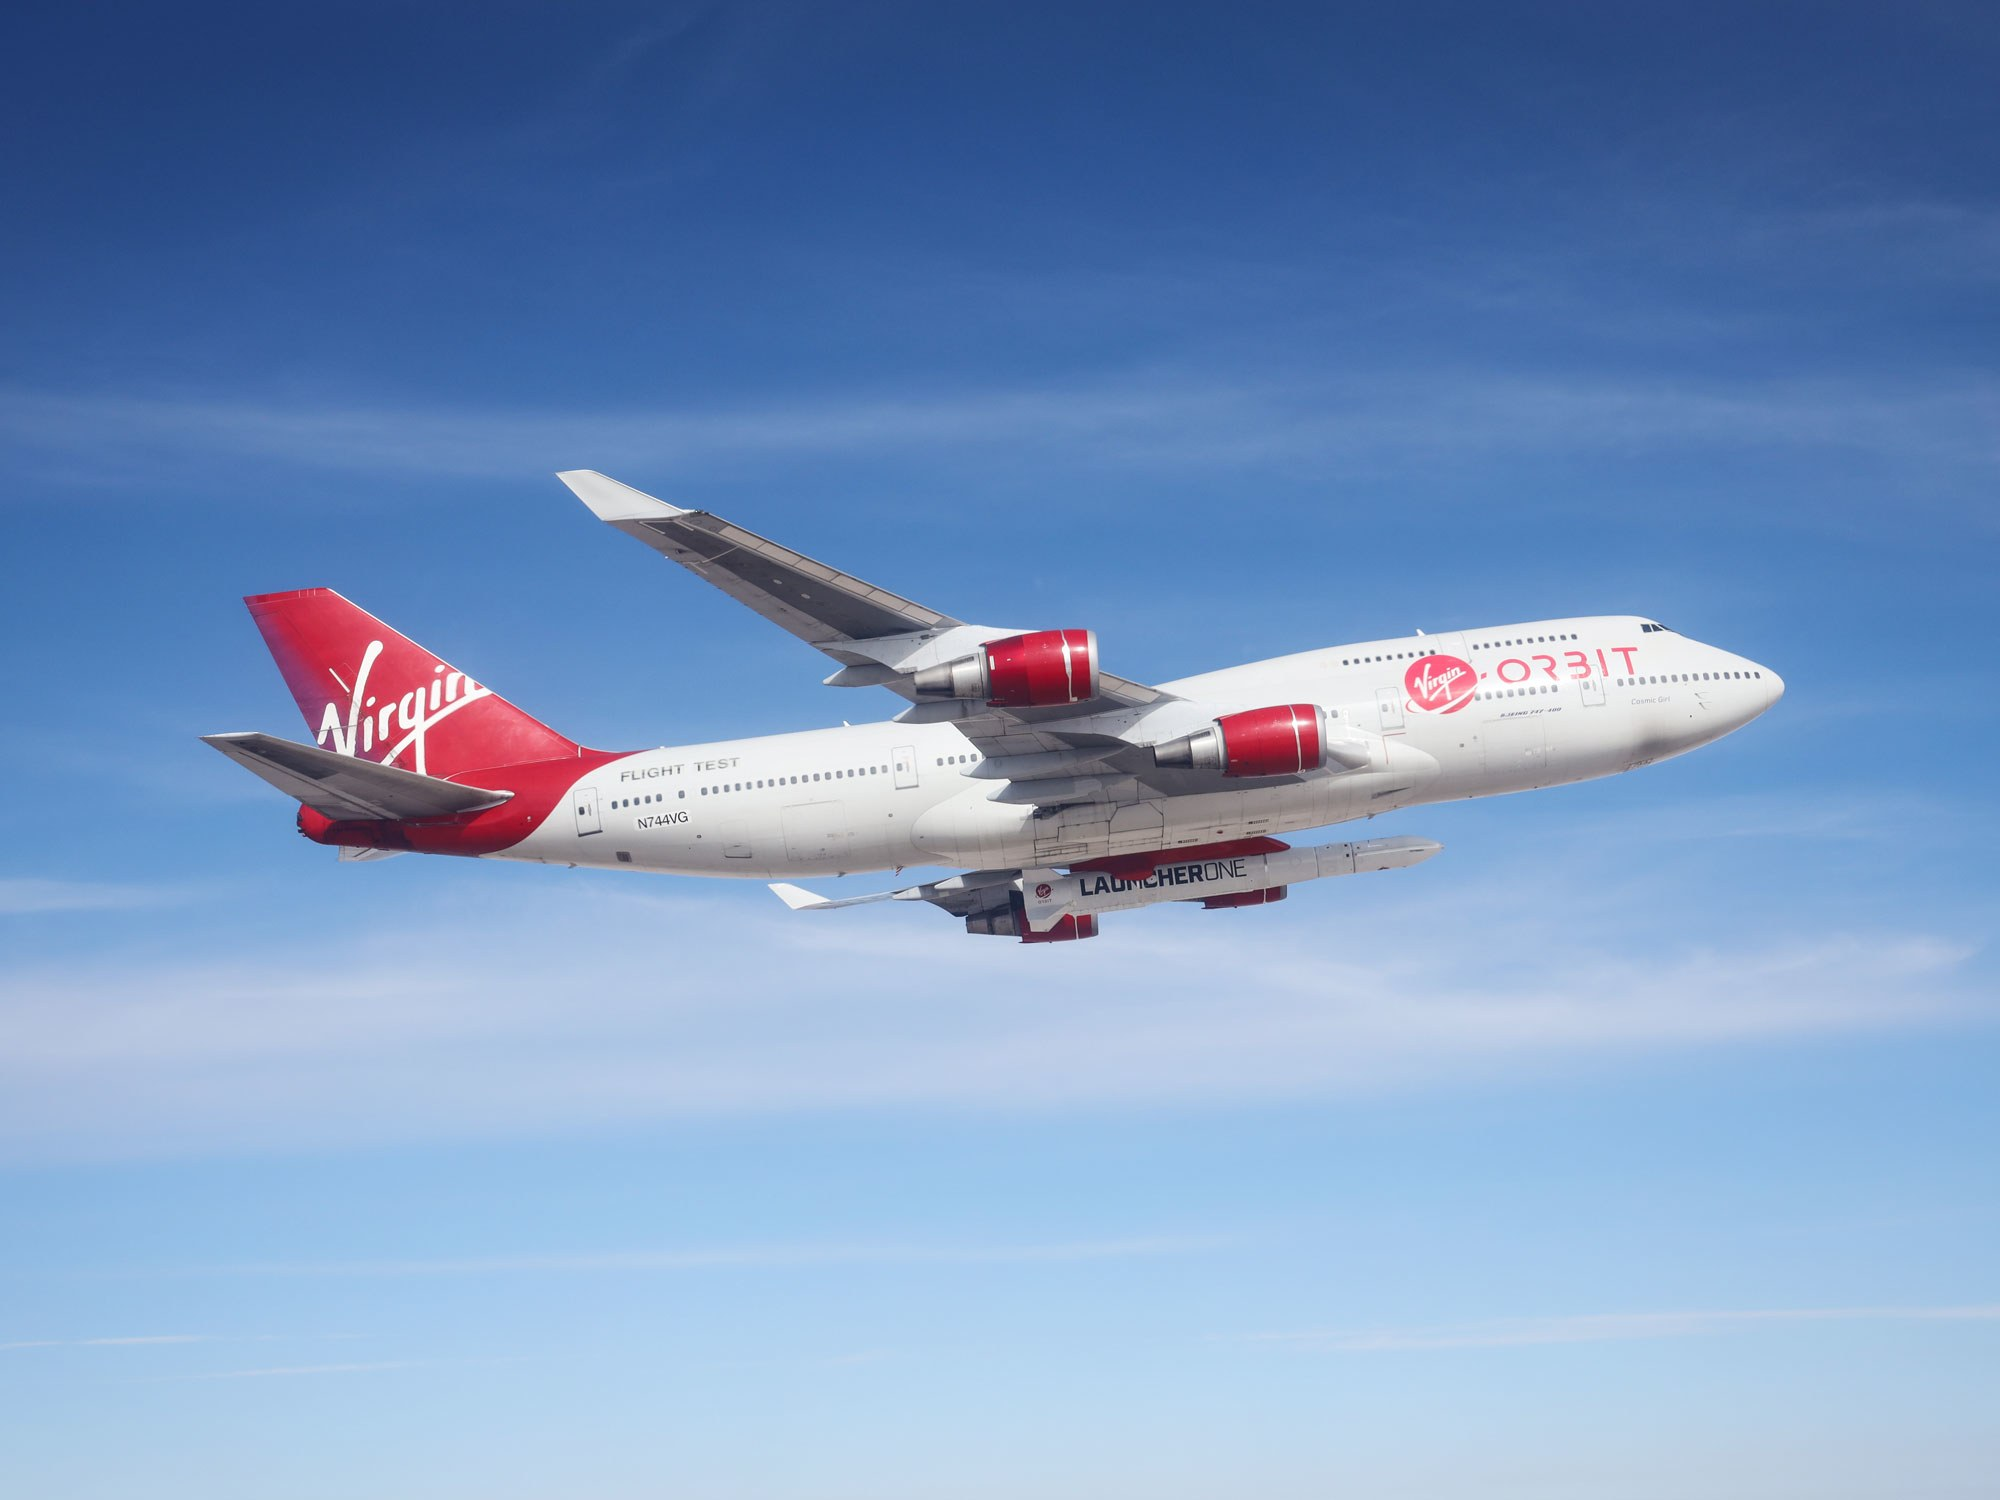 virgin+orbit+just+dropped+a+rocket+from+a+boeing+747